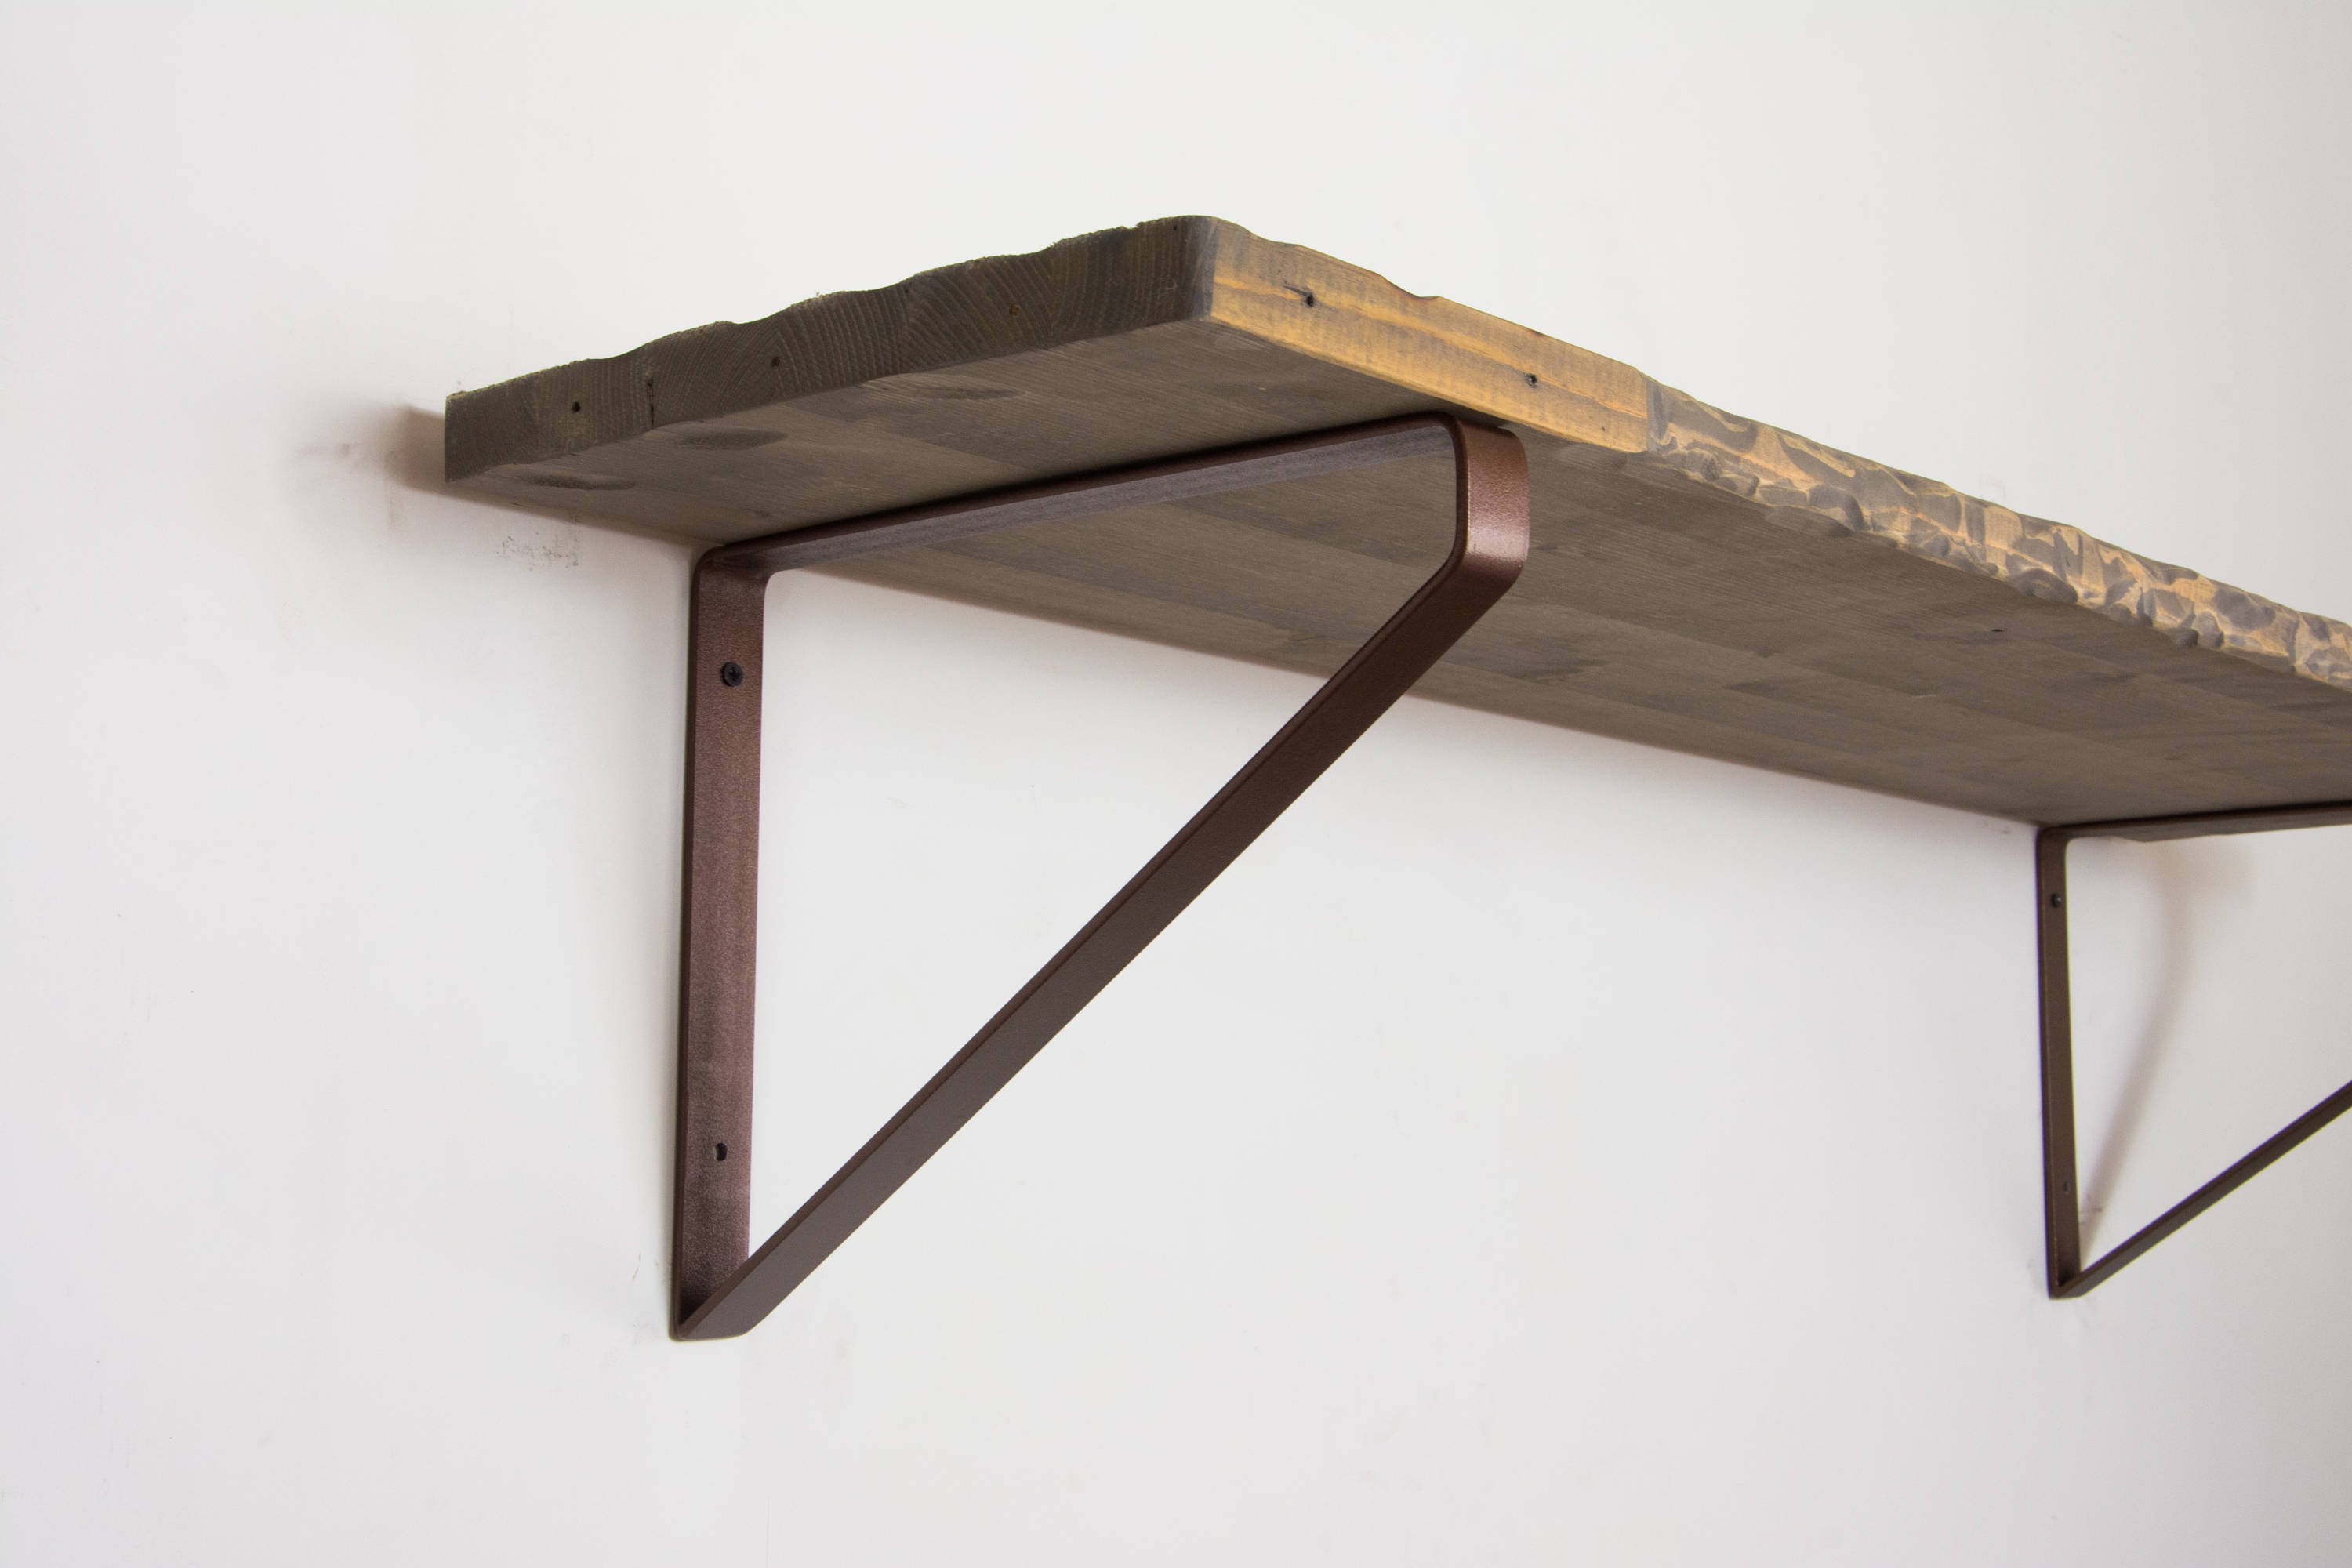 Inverted Triangle Coffee Tables For Latest Bronze Color Shelf Bracket – Newest Design – Inverted Triangle (View 17 of 20)